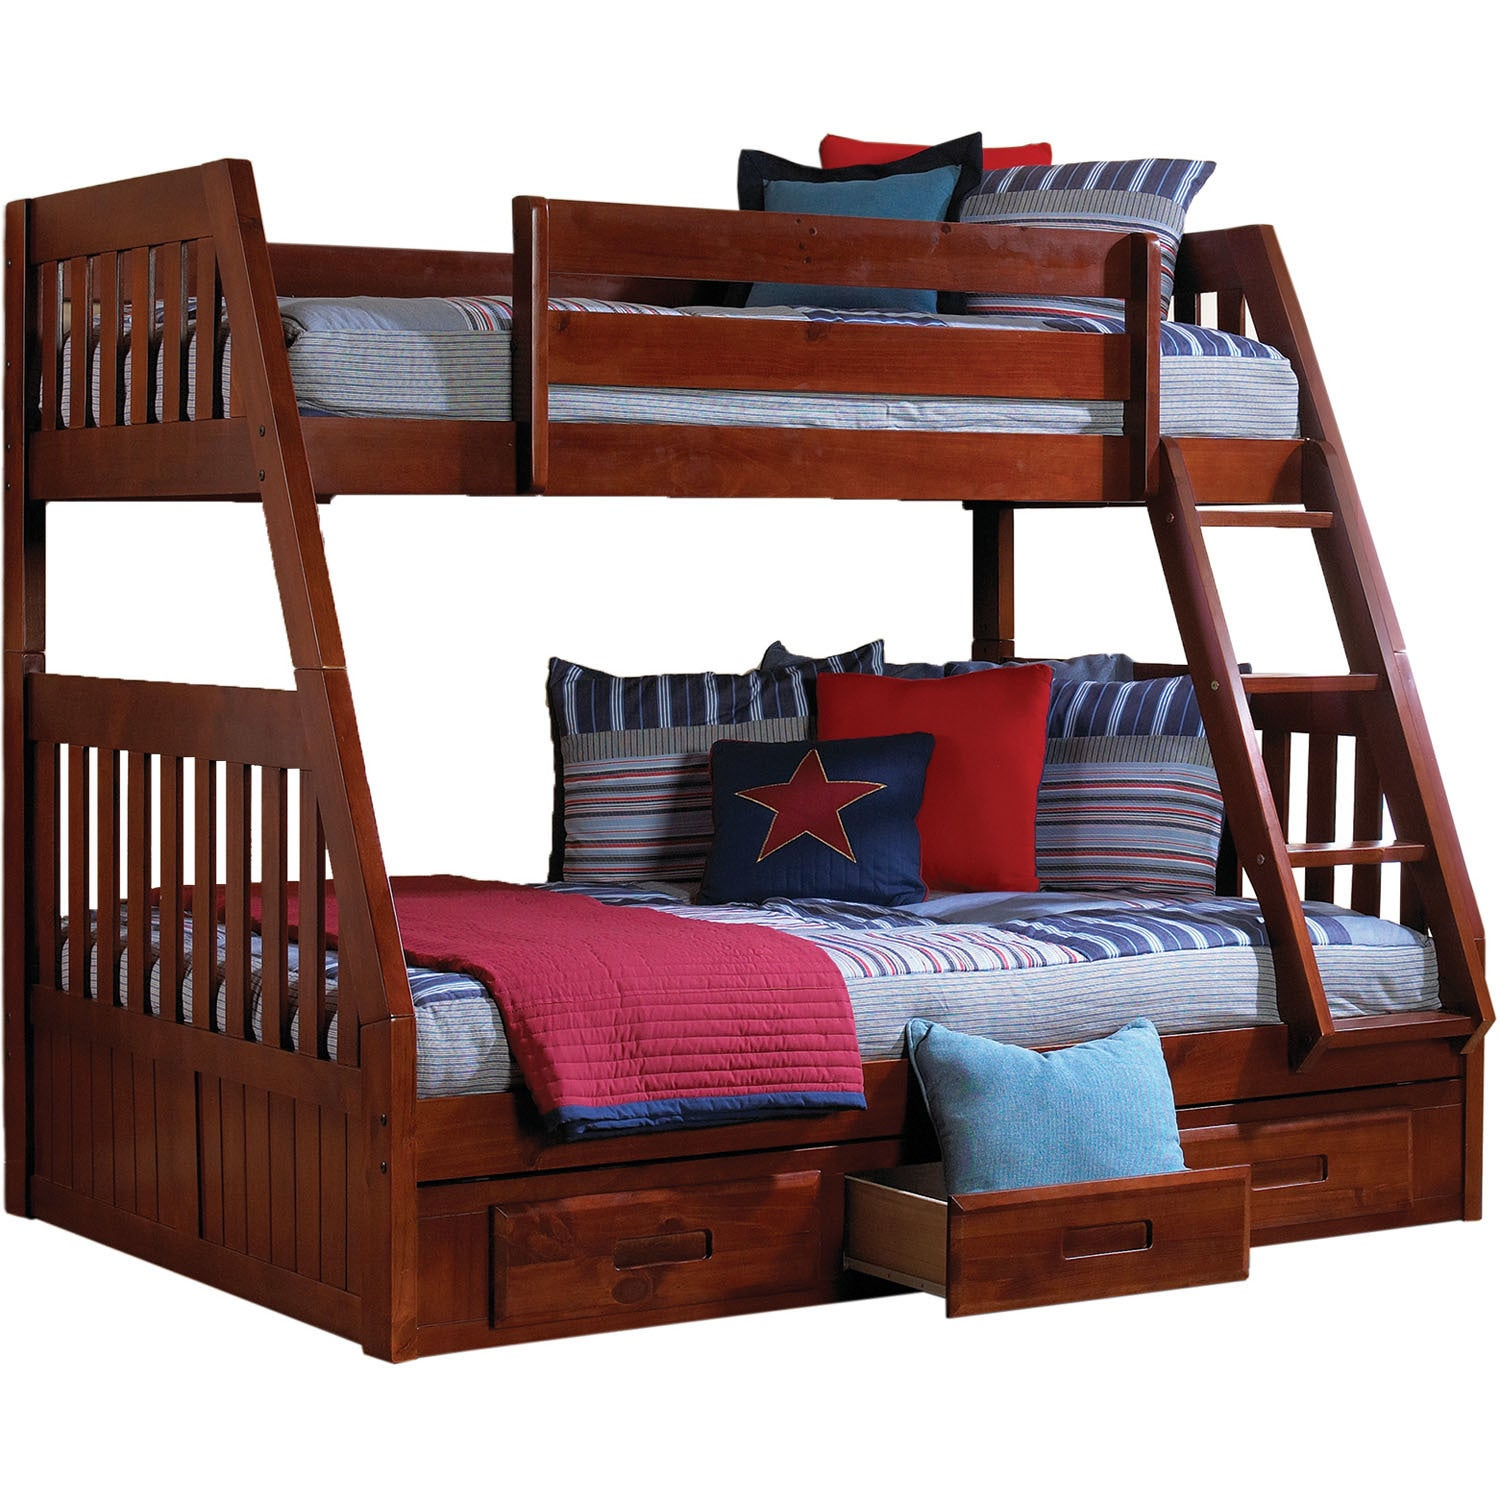 Cambridge Stanford Twin-over-full Bunk Bed With Twin Trun...